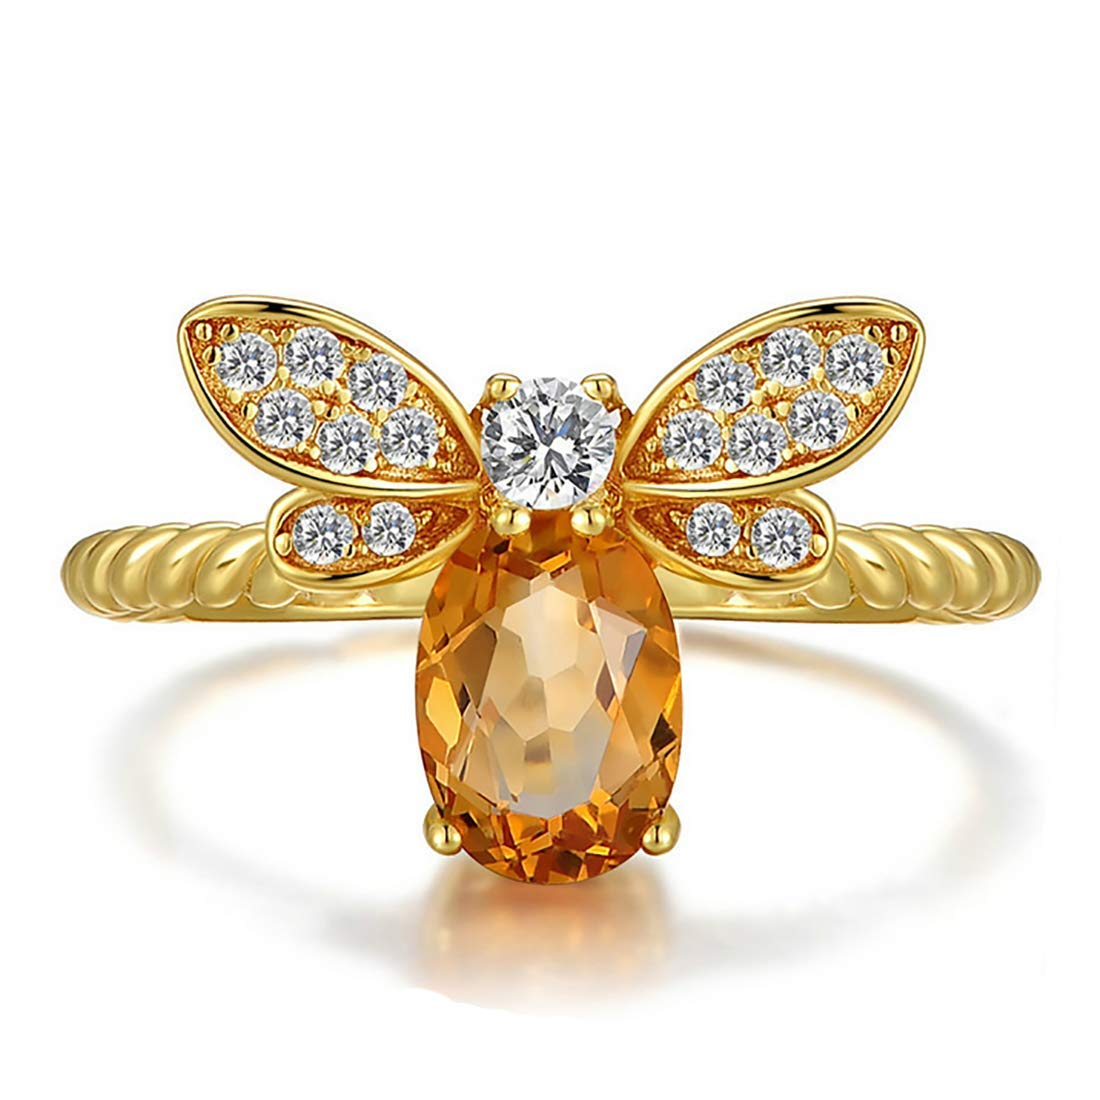 KWUNCCI Honey Bee Rings 14K Gold Plated Eternity Statement Engagement Band Rings with Natural Yellow Crystal Adjustable for Girls Women